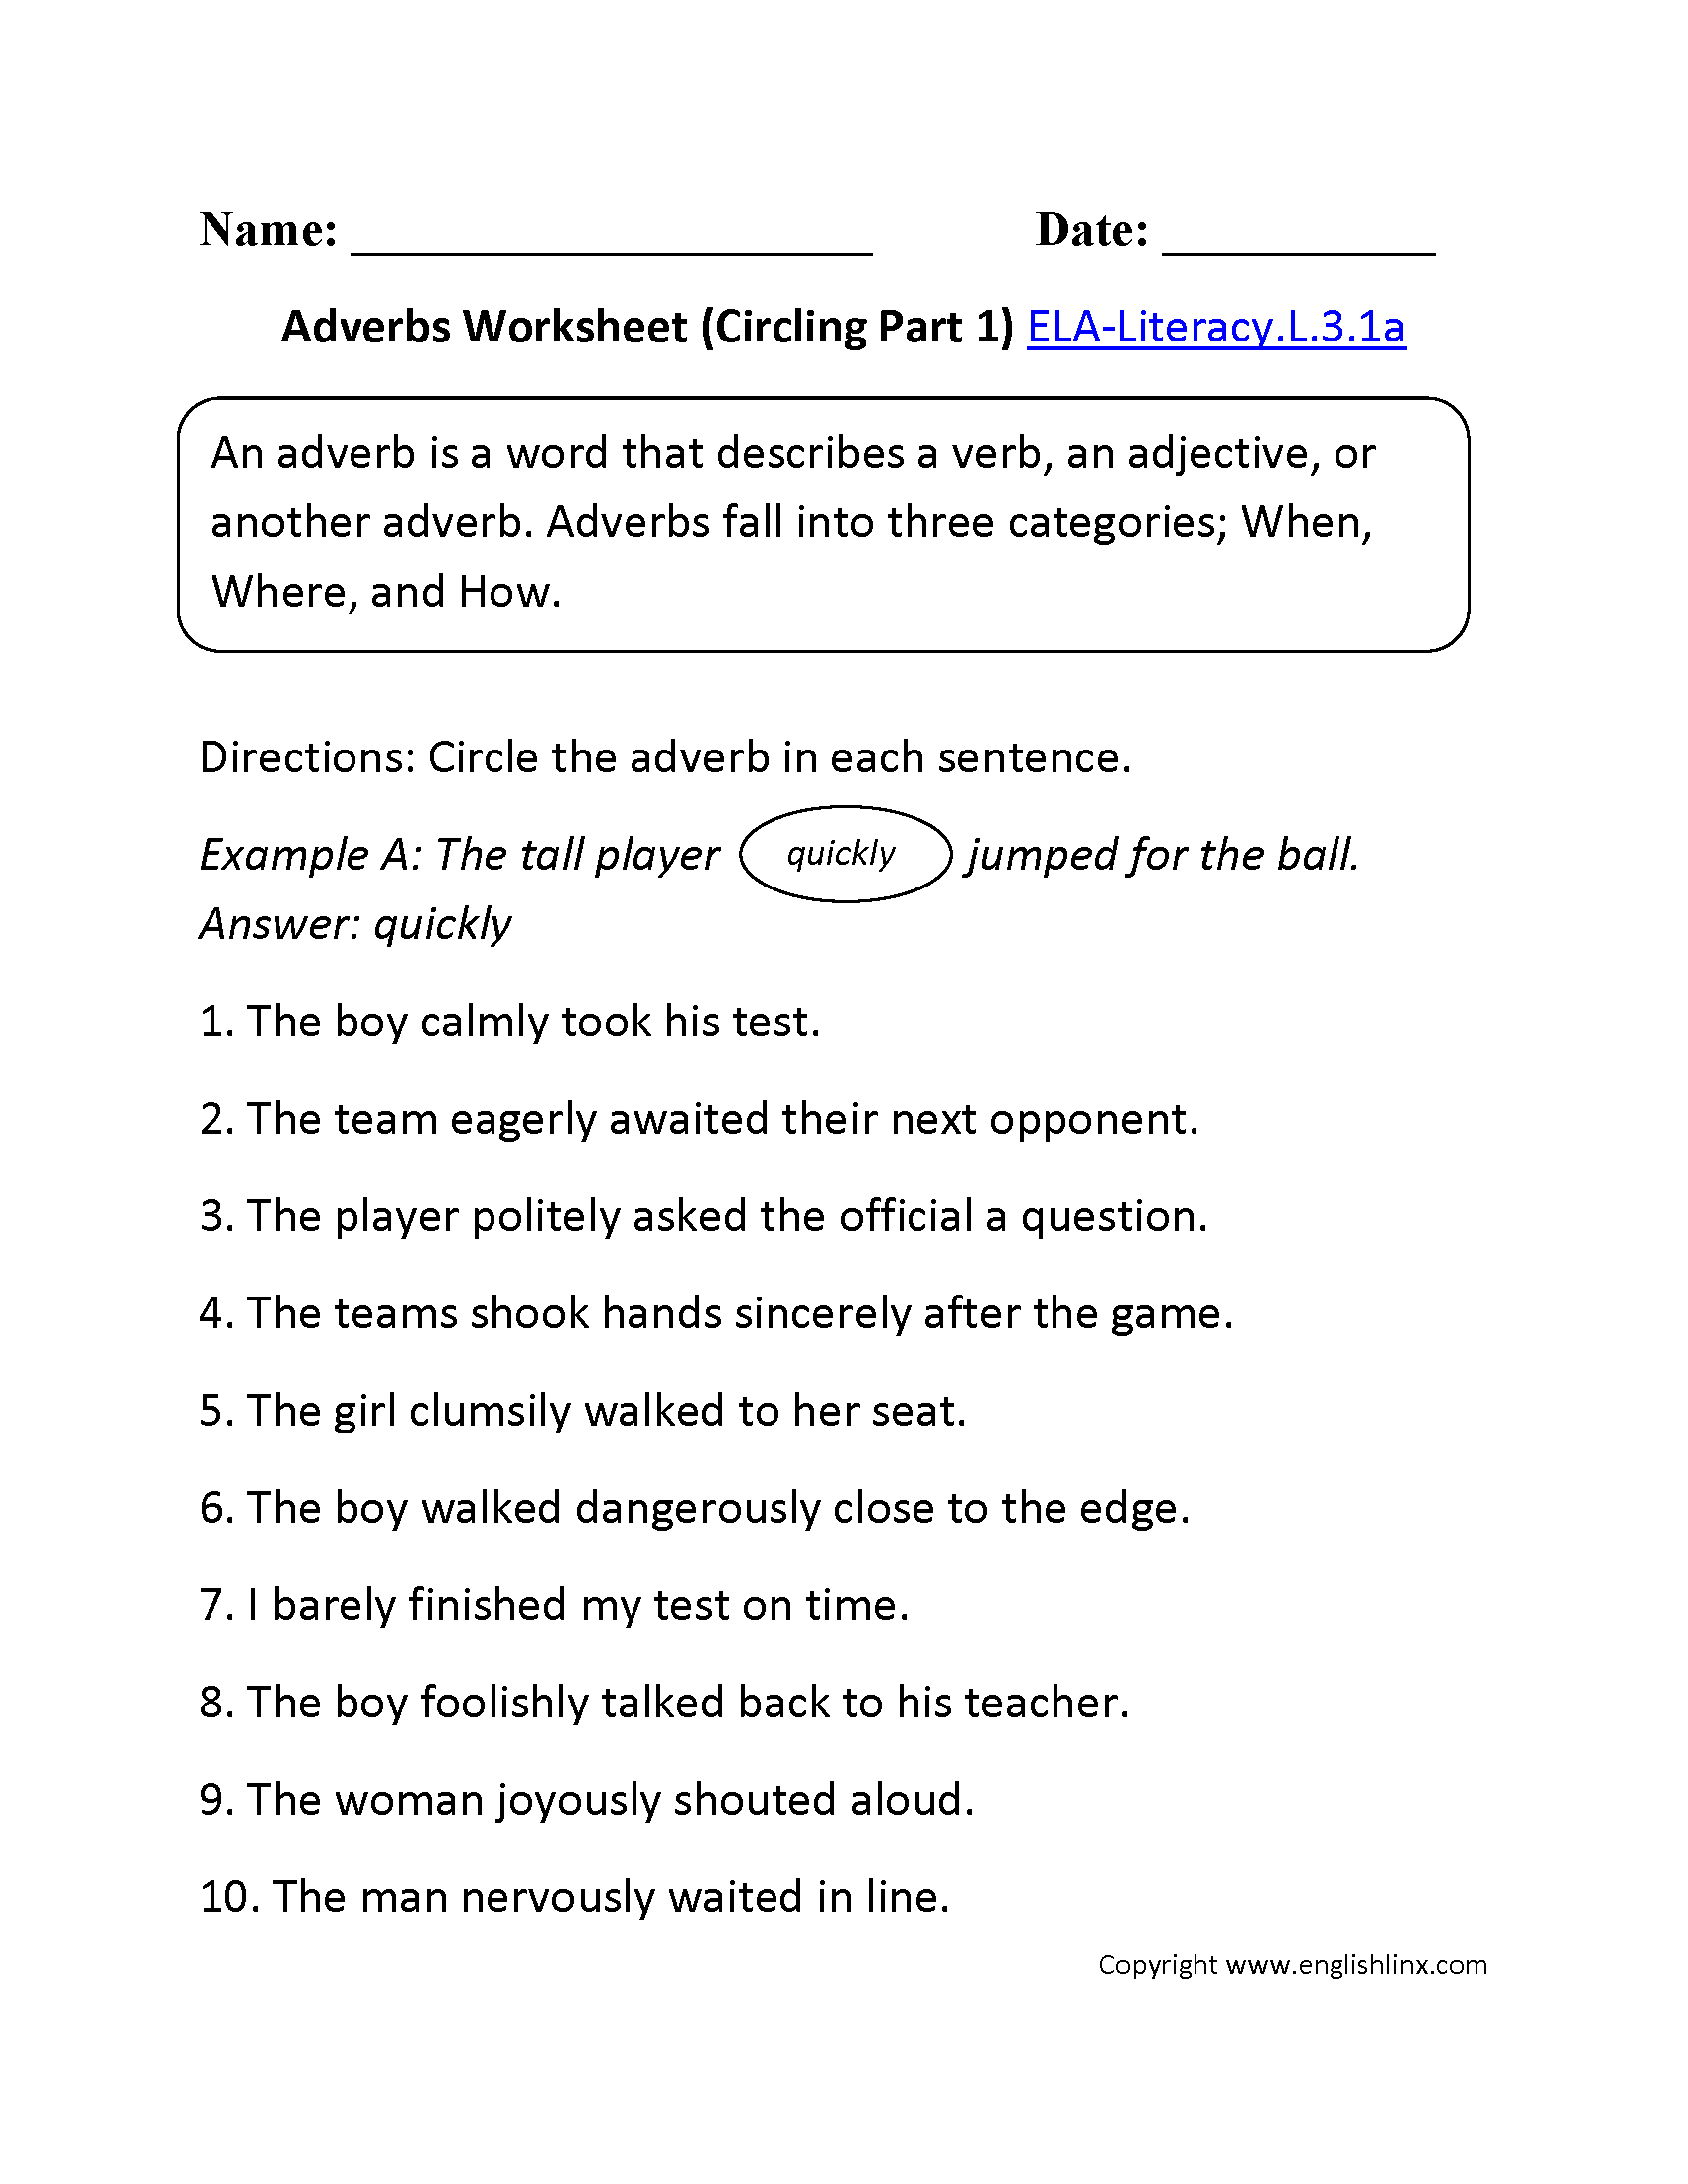 Adverbs Worksheet 1 L 3 1